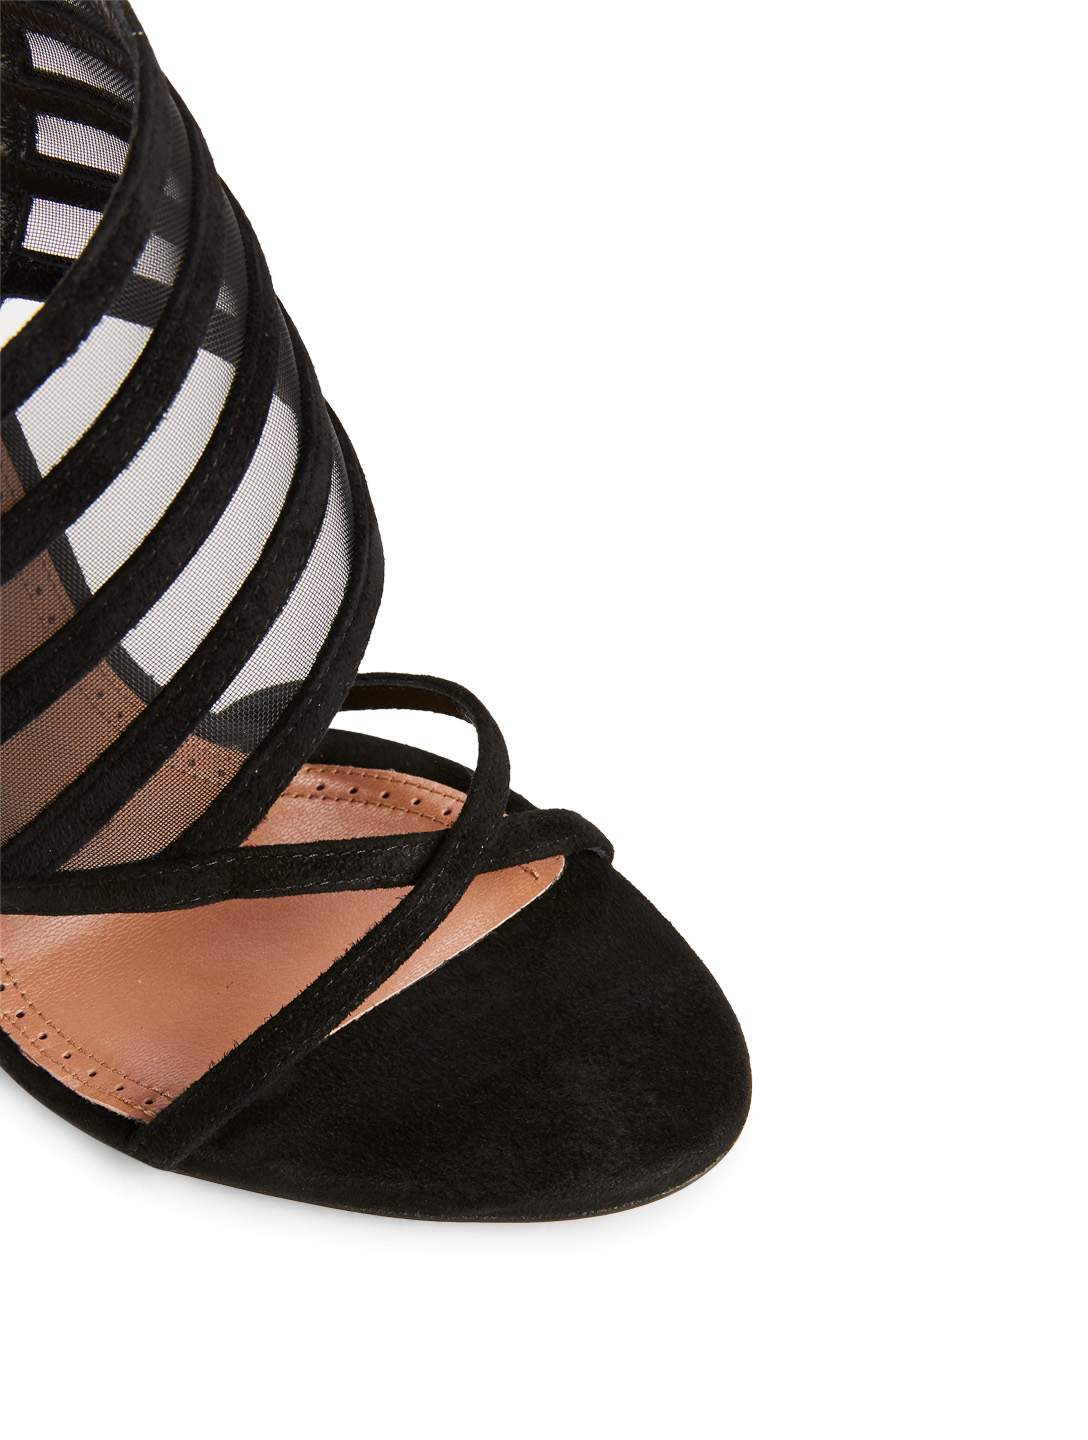 ALAIA Suede And Mesh Heeled Sandals Womens Black